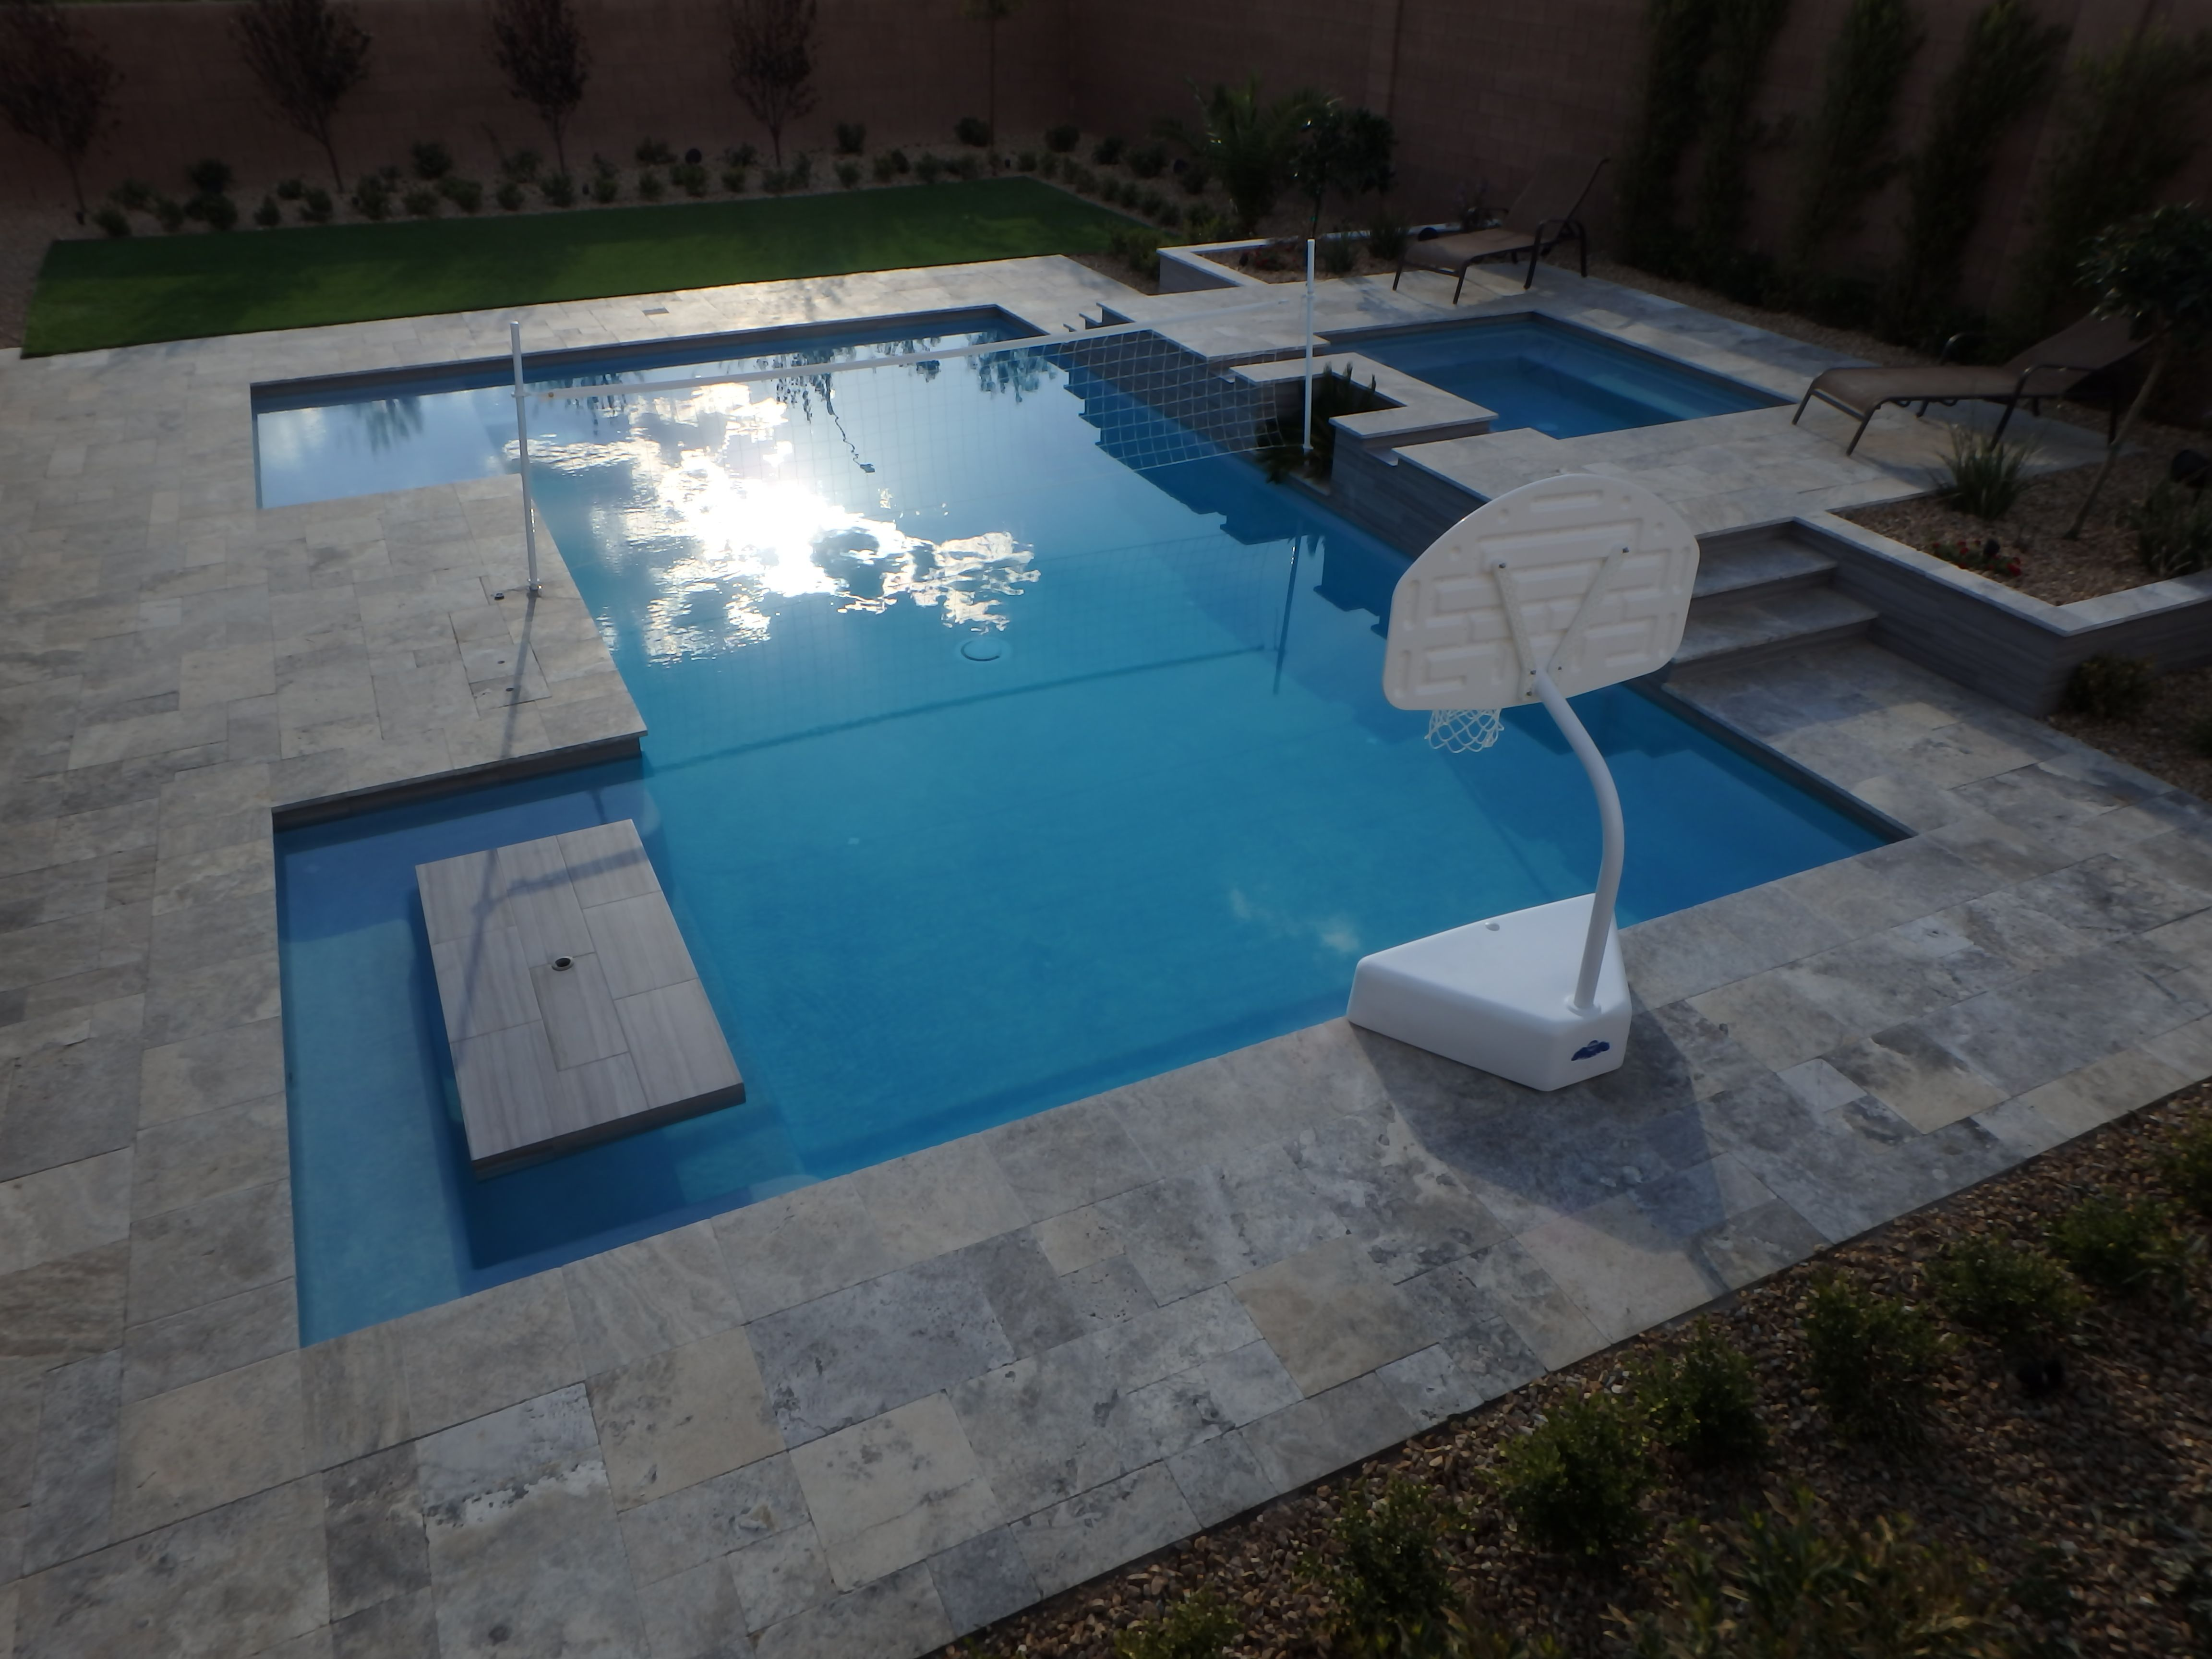 This Pool Has Great Fun In The Sun Options Spillover Spa Built In Table Benches Umbrella Sleeves Pole Holders For Volleyball Pool Bench Table Pole Holders